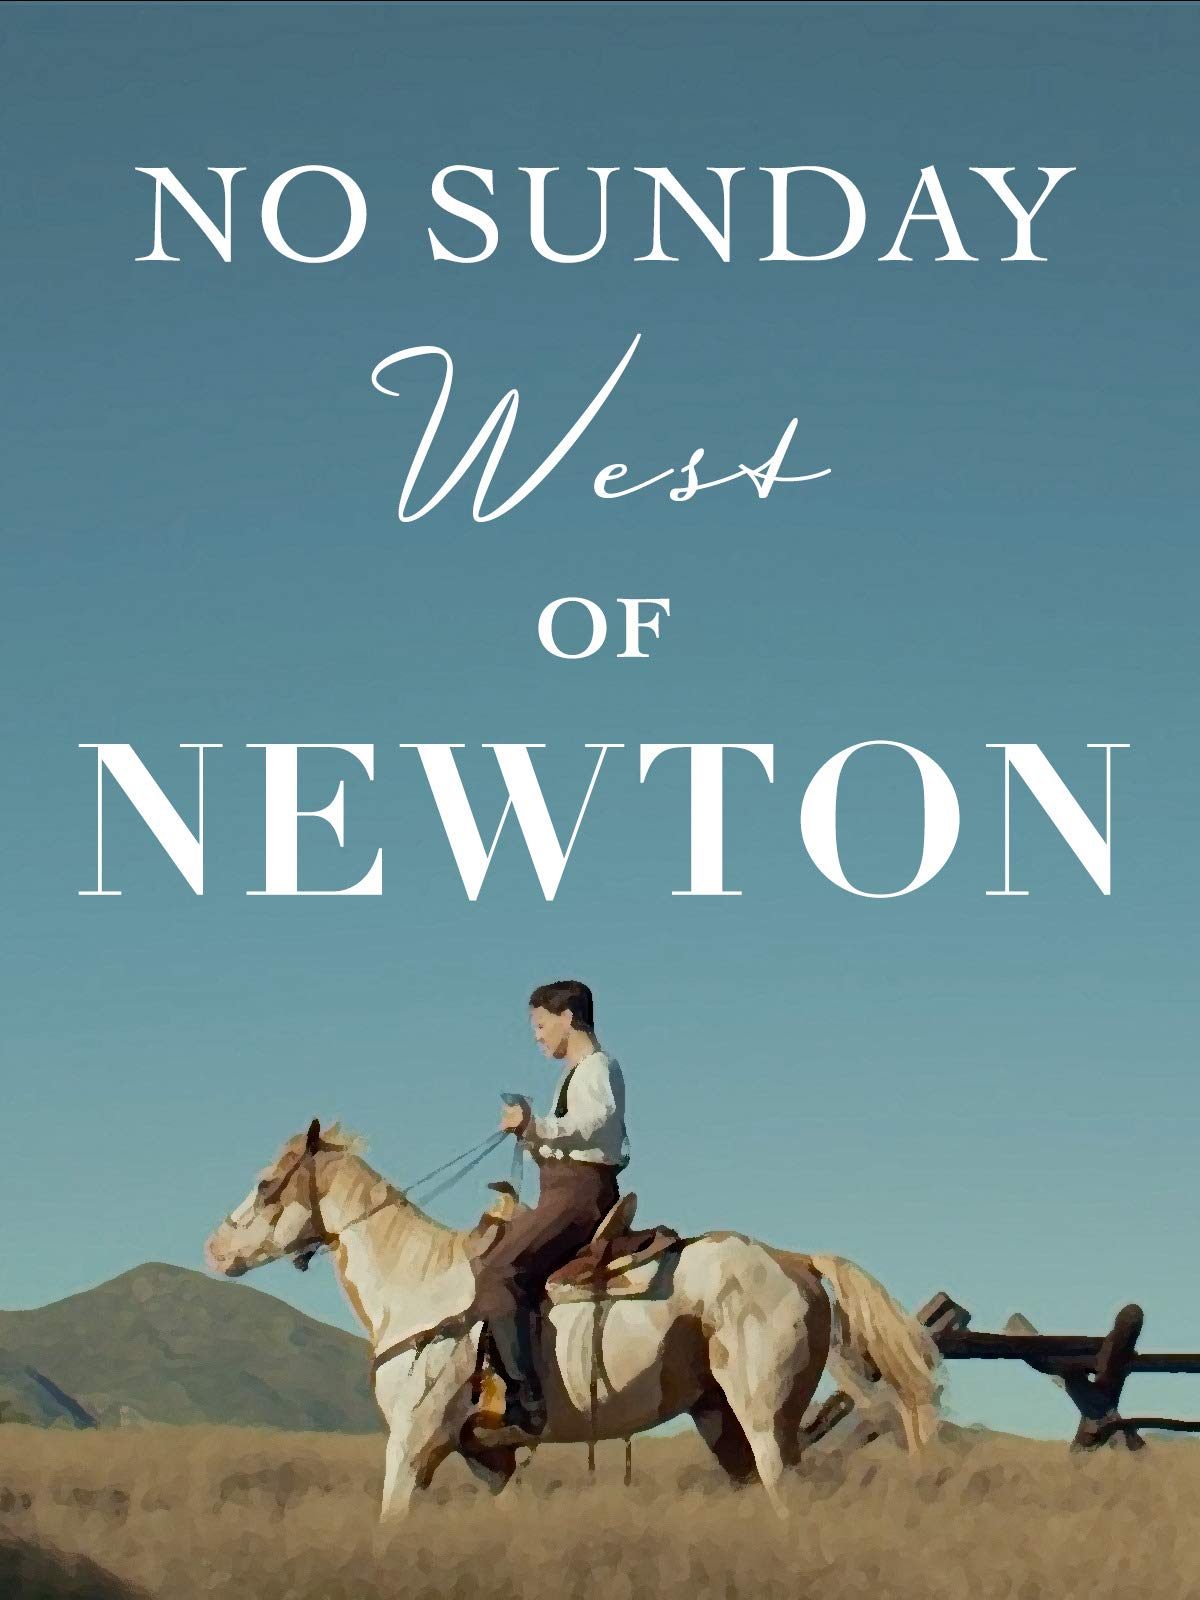 No Sunday West Of Newton